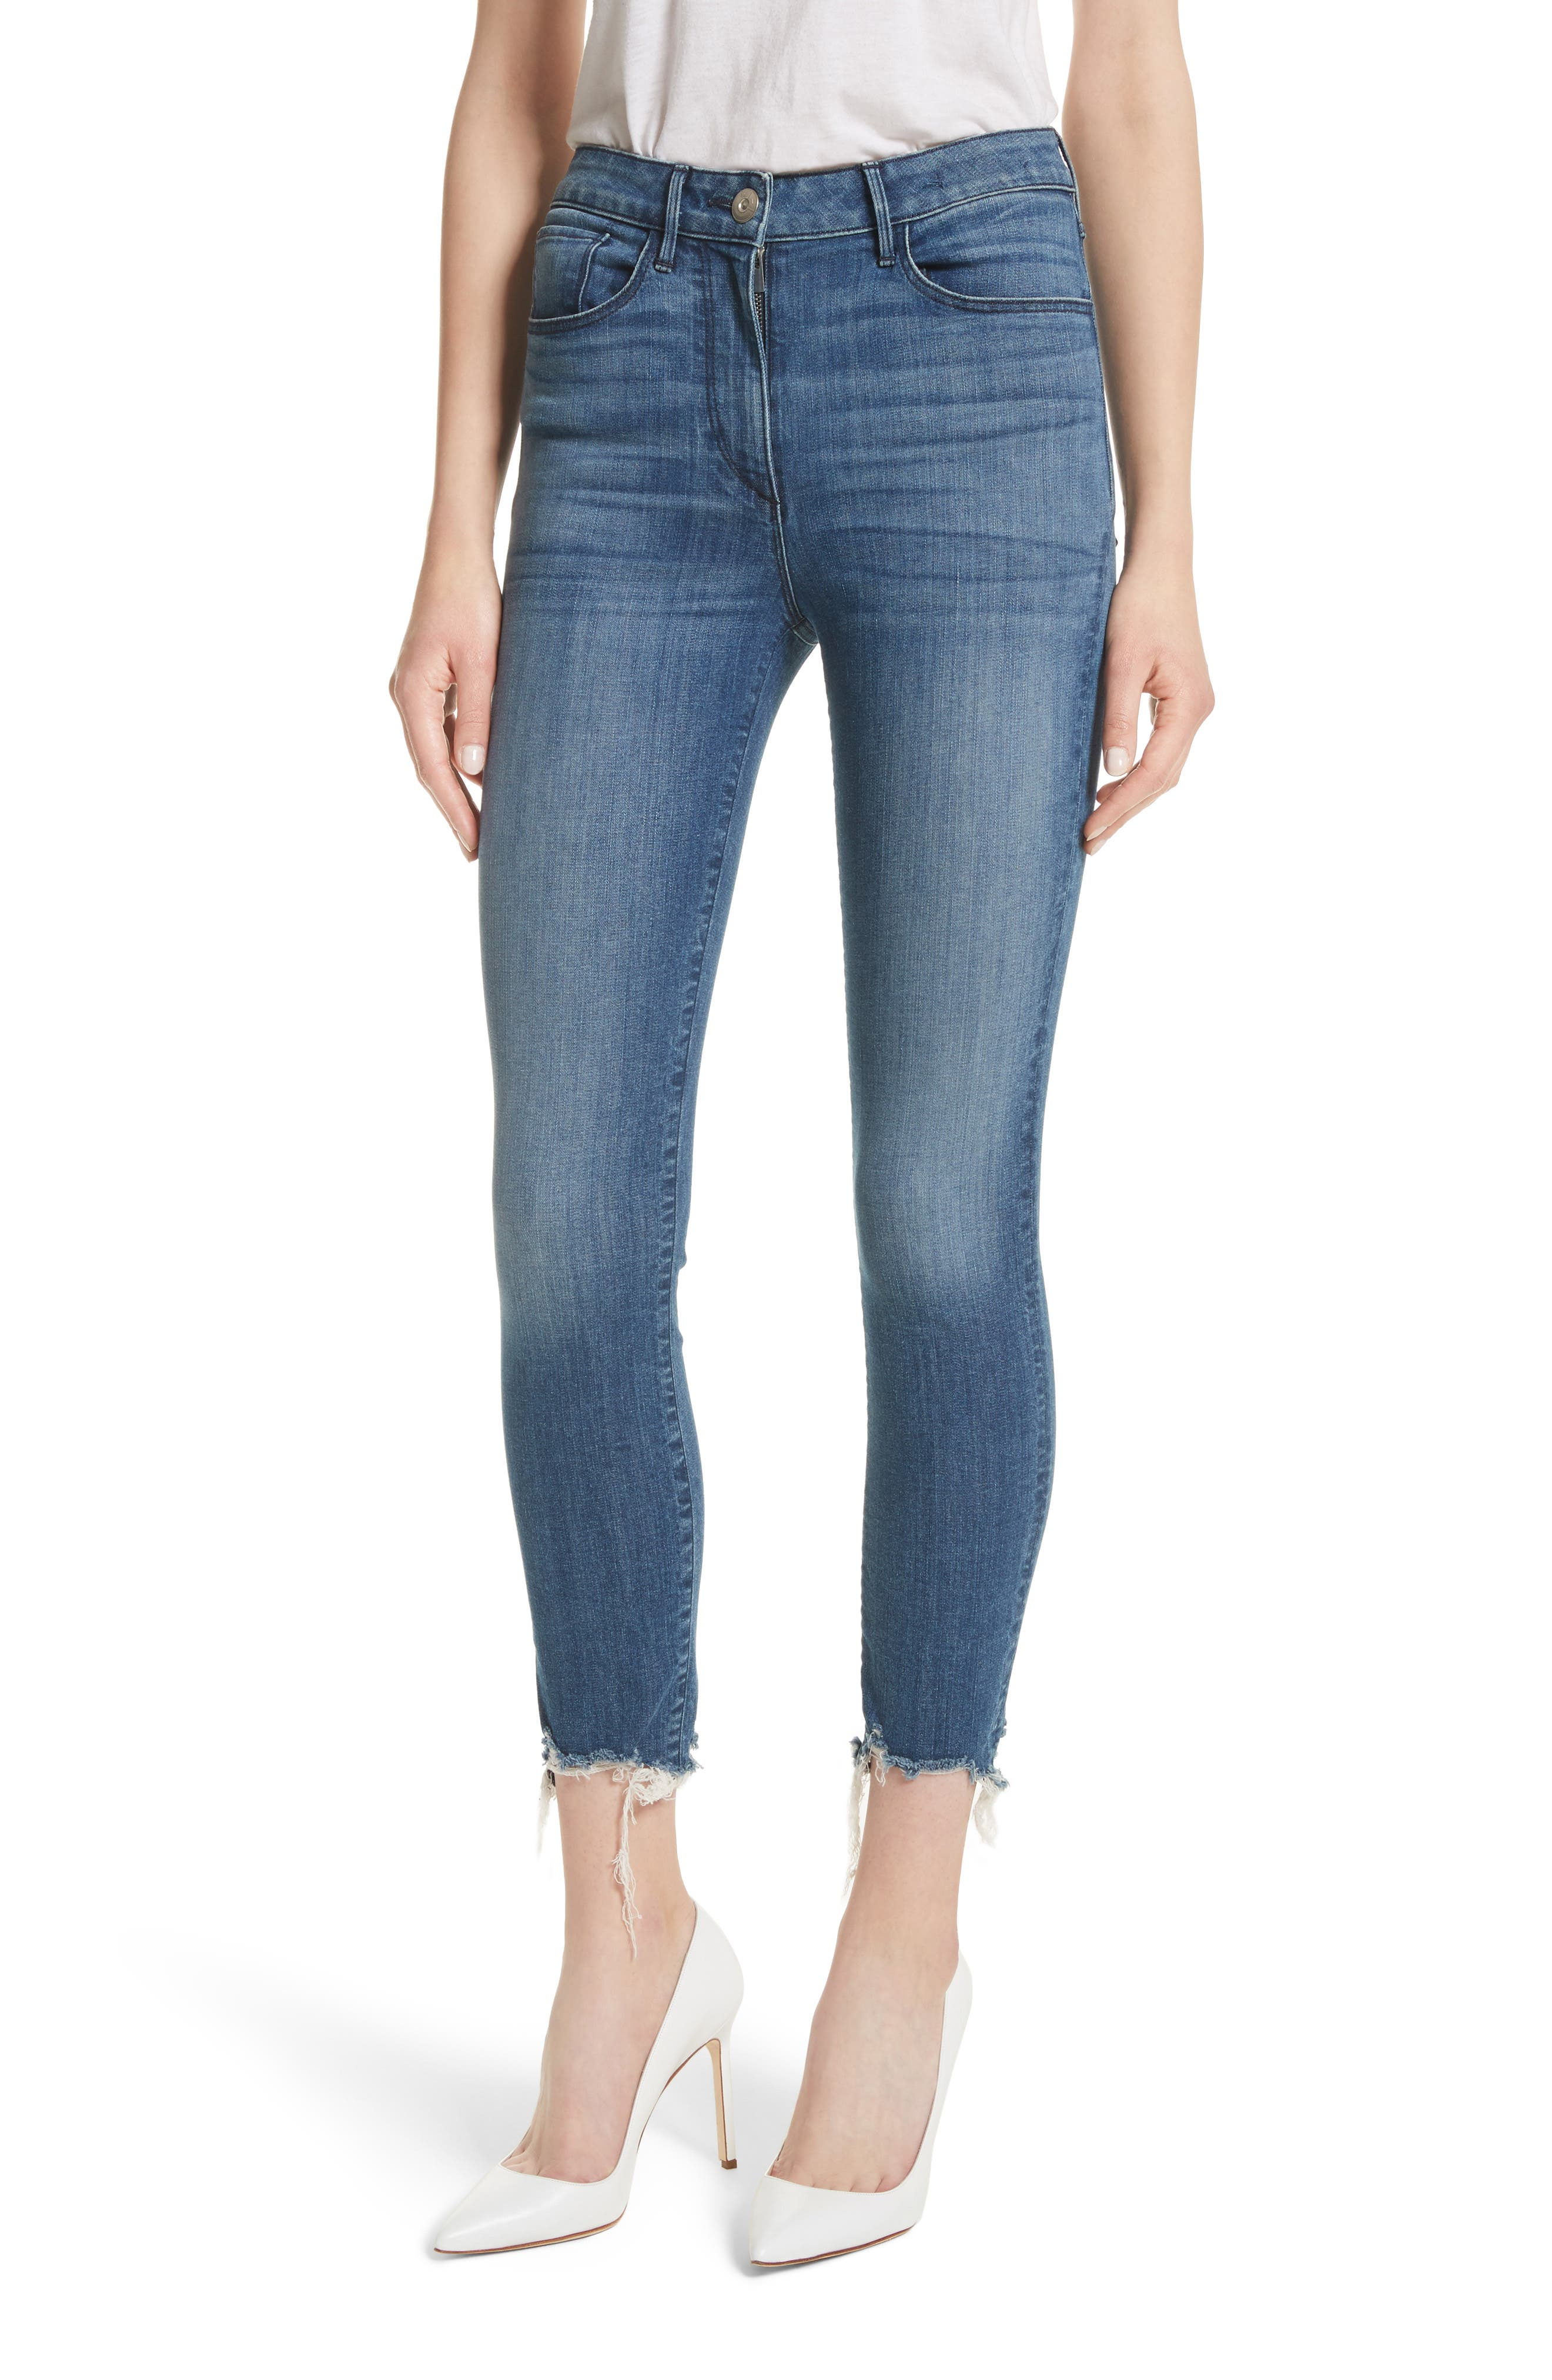 W3 Crop Skinny Jeans,                             Main thumbnail 1, color,                             428